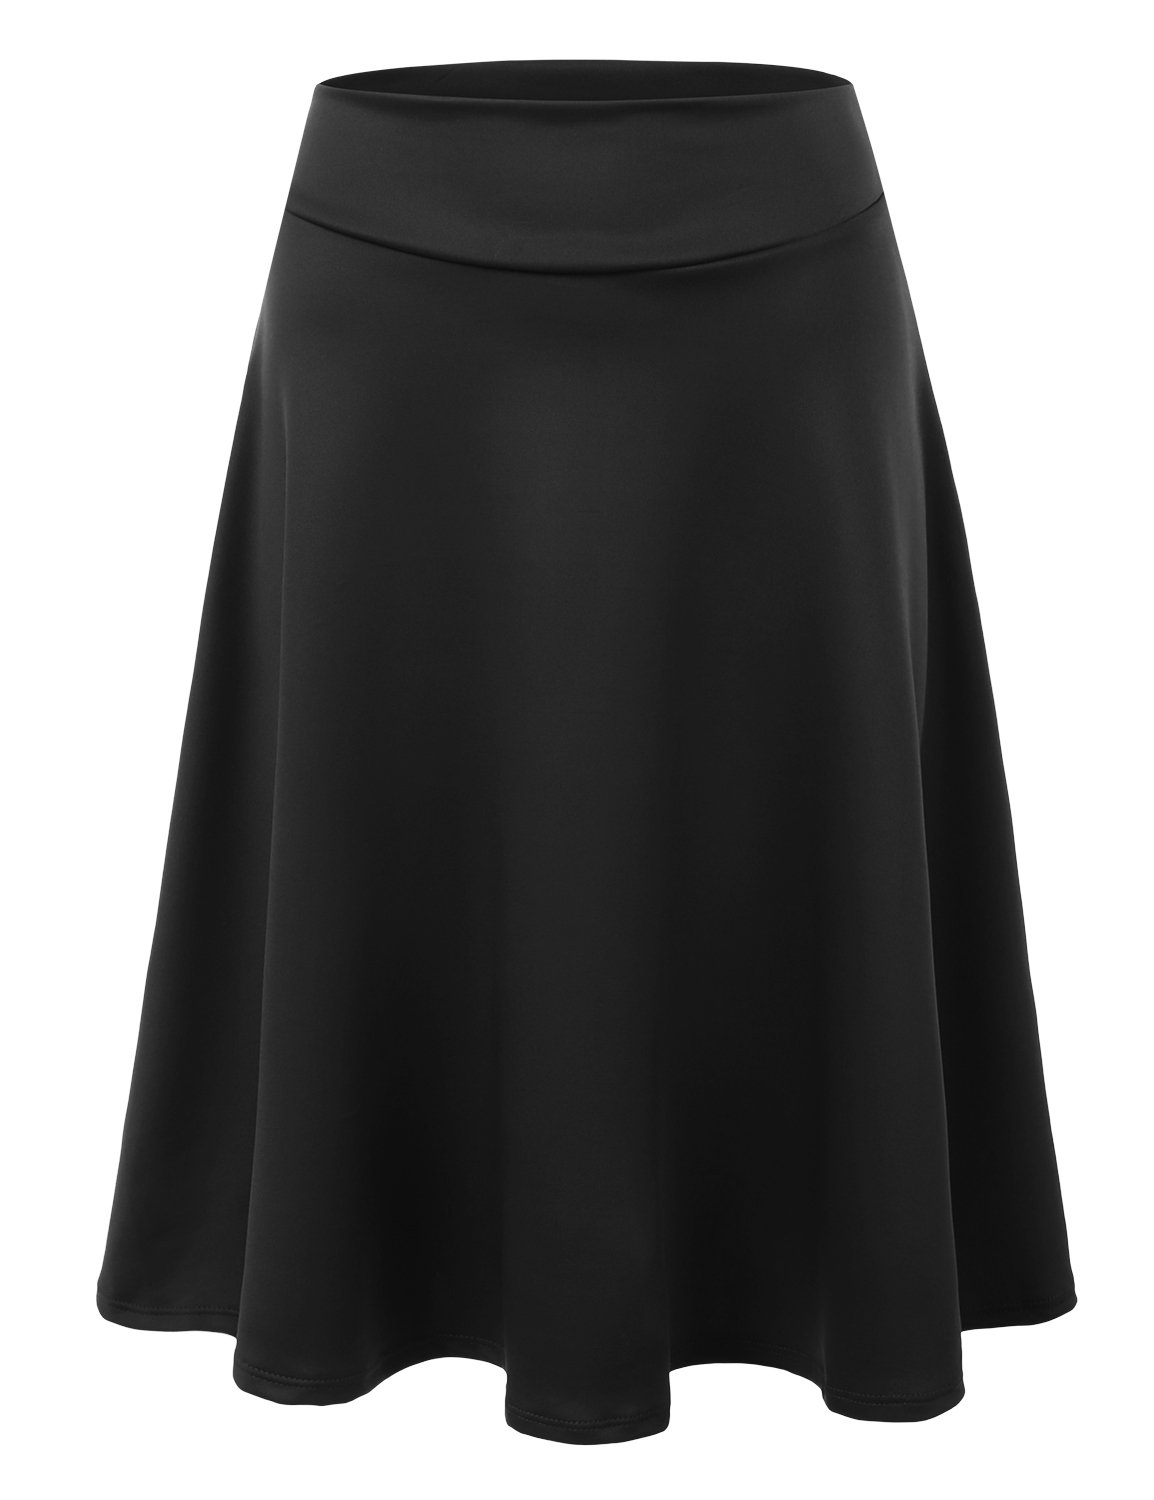 Doublju Womens High Waist Midi A-Line Skirt Black Small